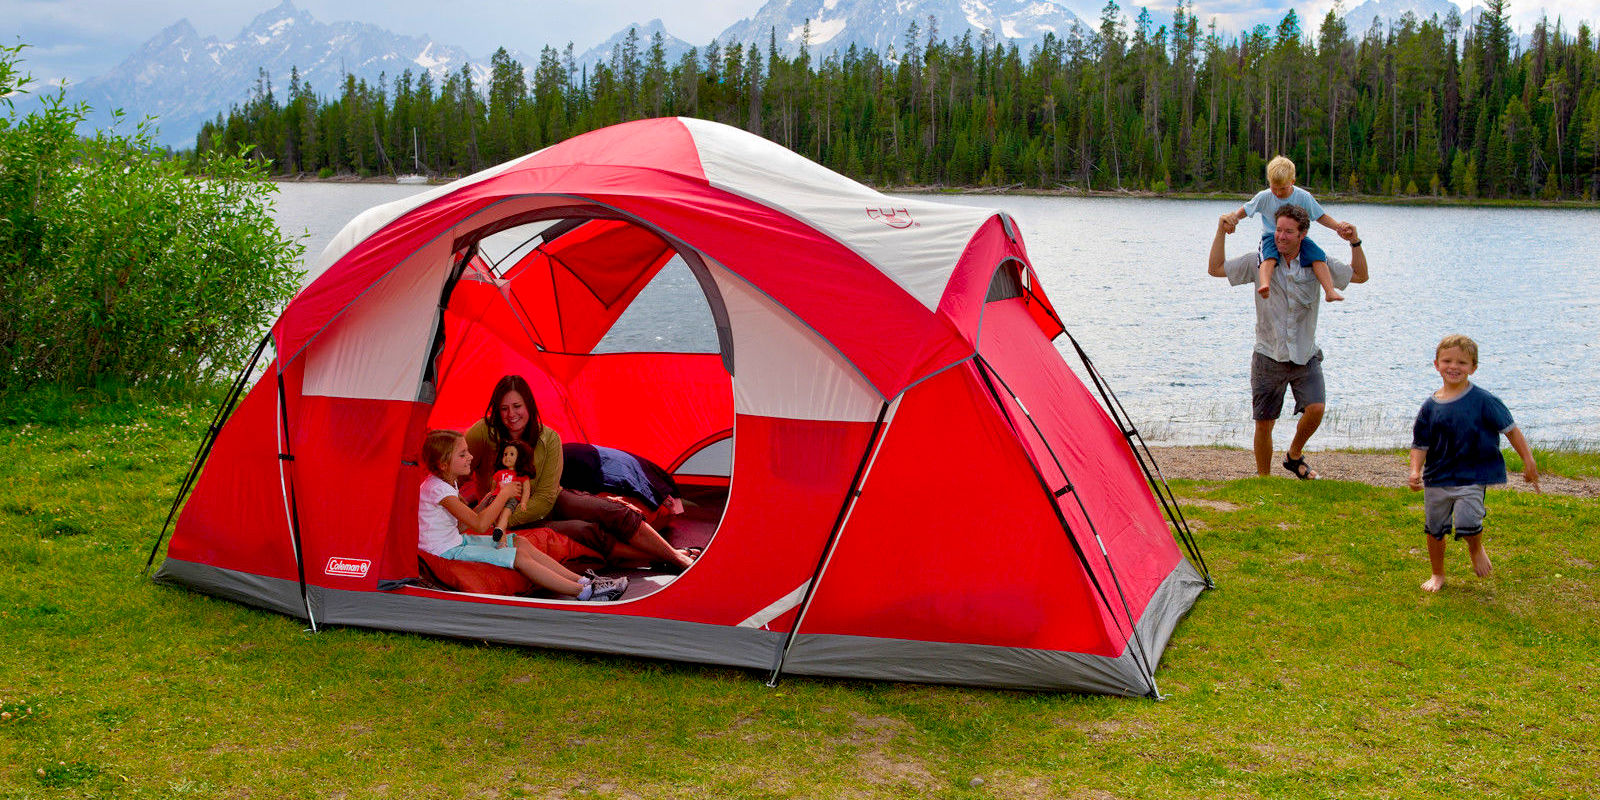 Take Coleman's 8-Person Dome Tent on your next adventure for $90 (Reg. $150)